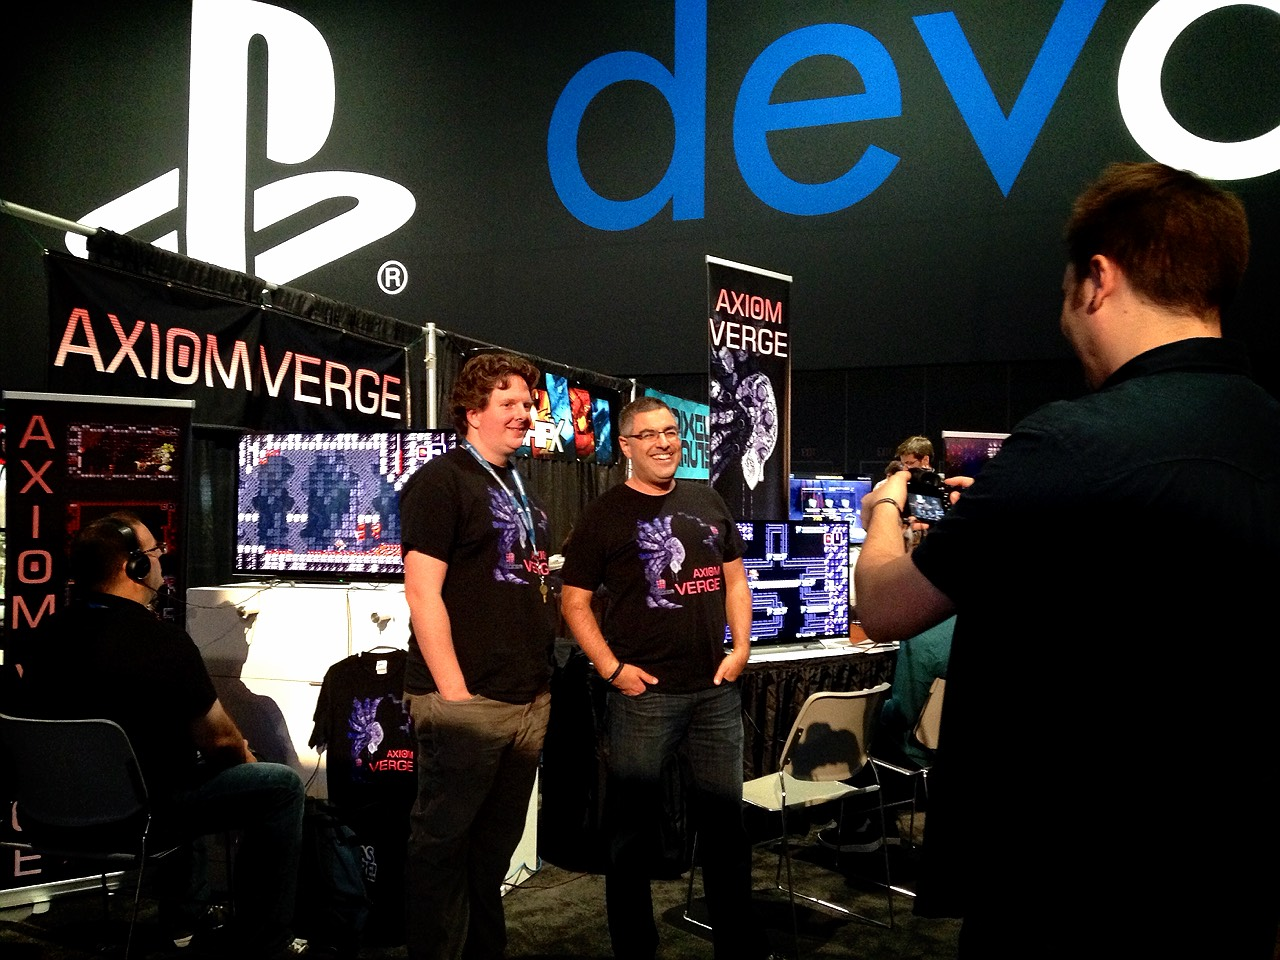 Here's me and Dan at the Axiom Verge booth.  Juston Massongill is the one taking the photo, which came out awesome, but which I couldn't figure out how to download from Instagram :)